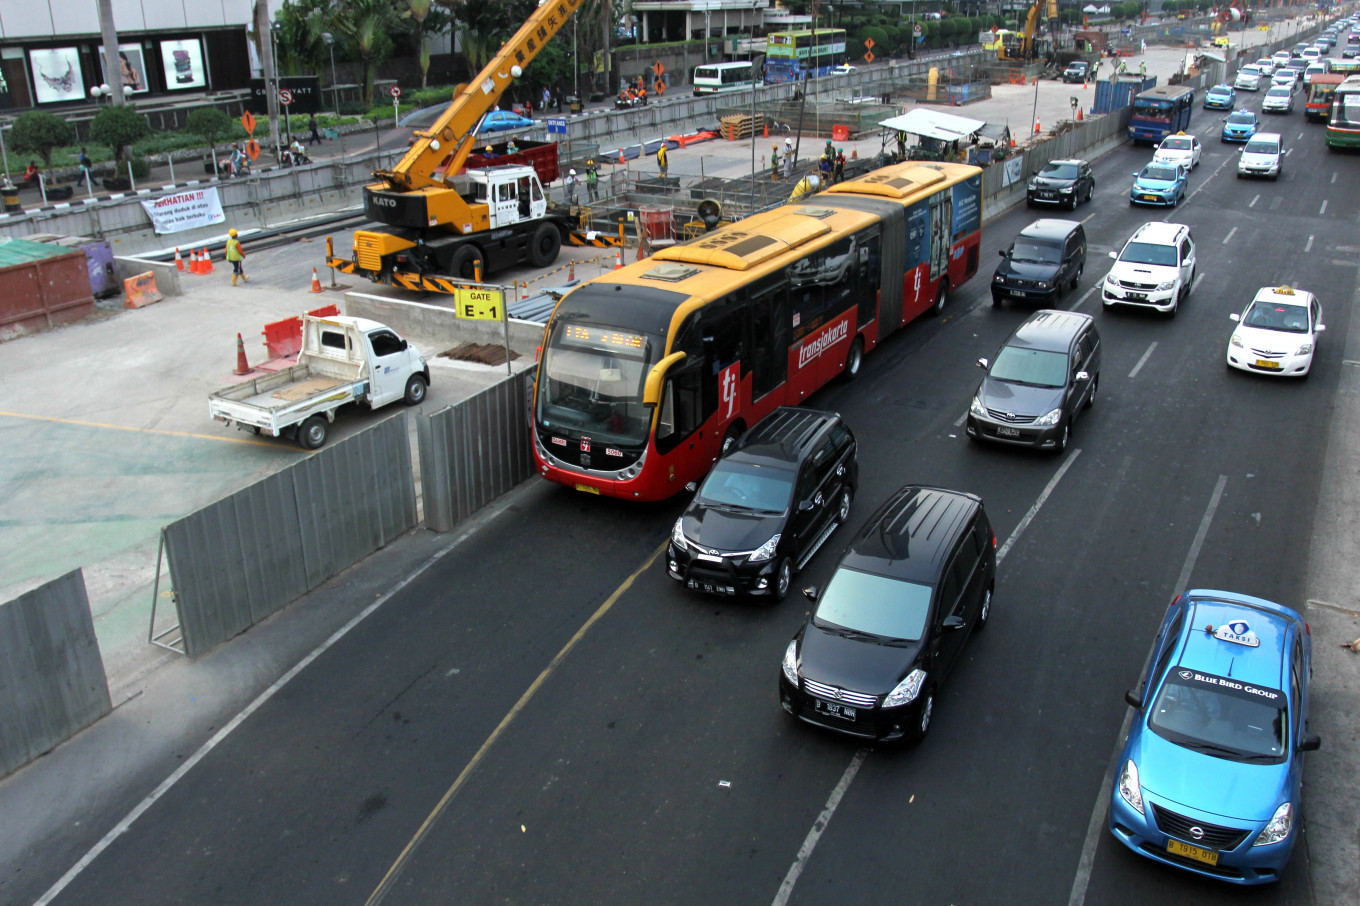 Revolutionary Transjakarta proves its relevance after 15 years